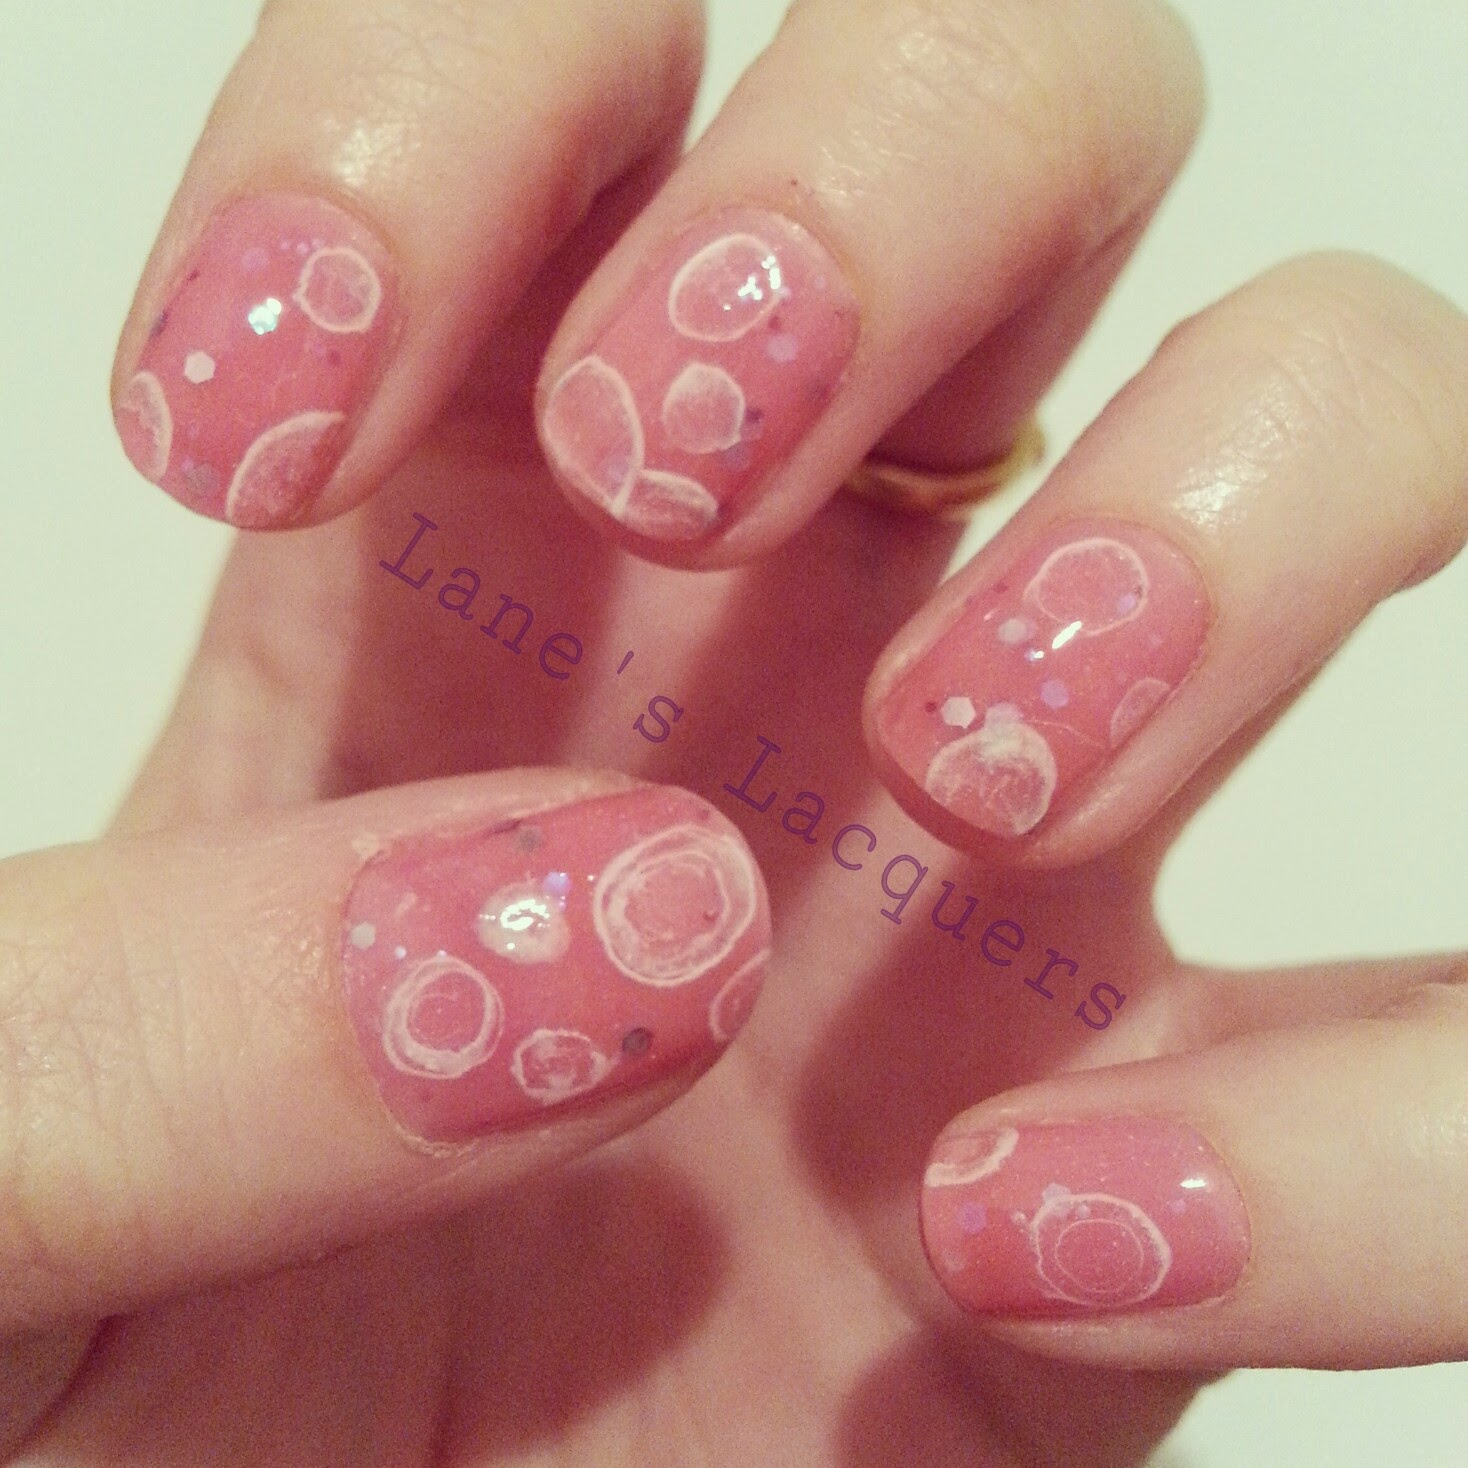 luv-polish-bubble-fun-swatch-bubbles-nail-art